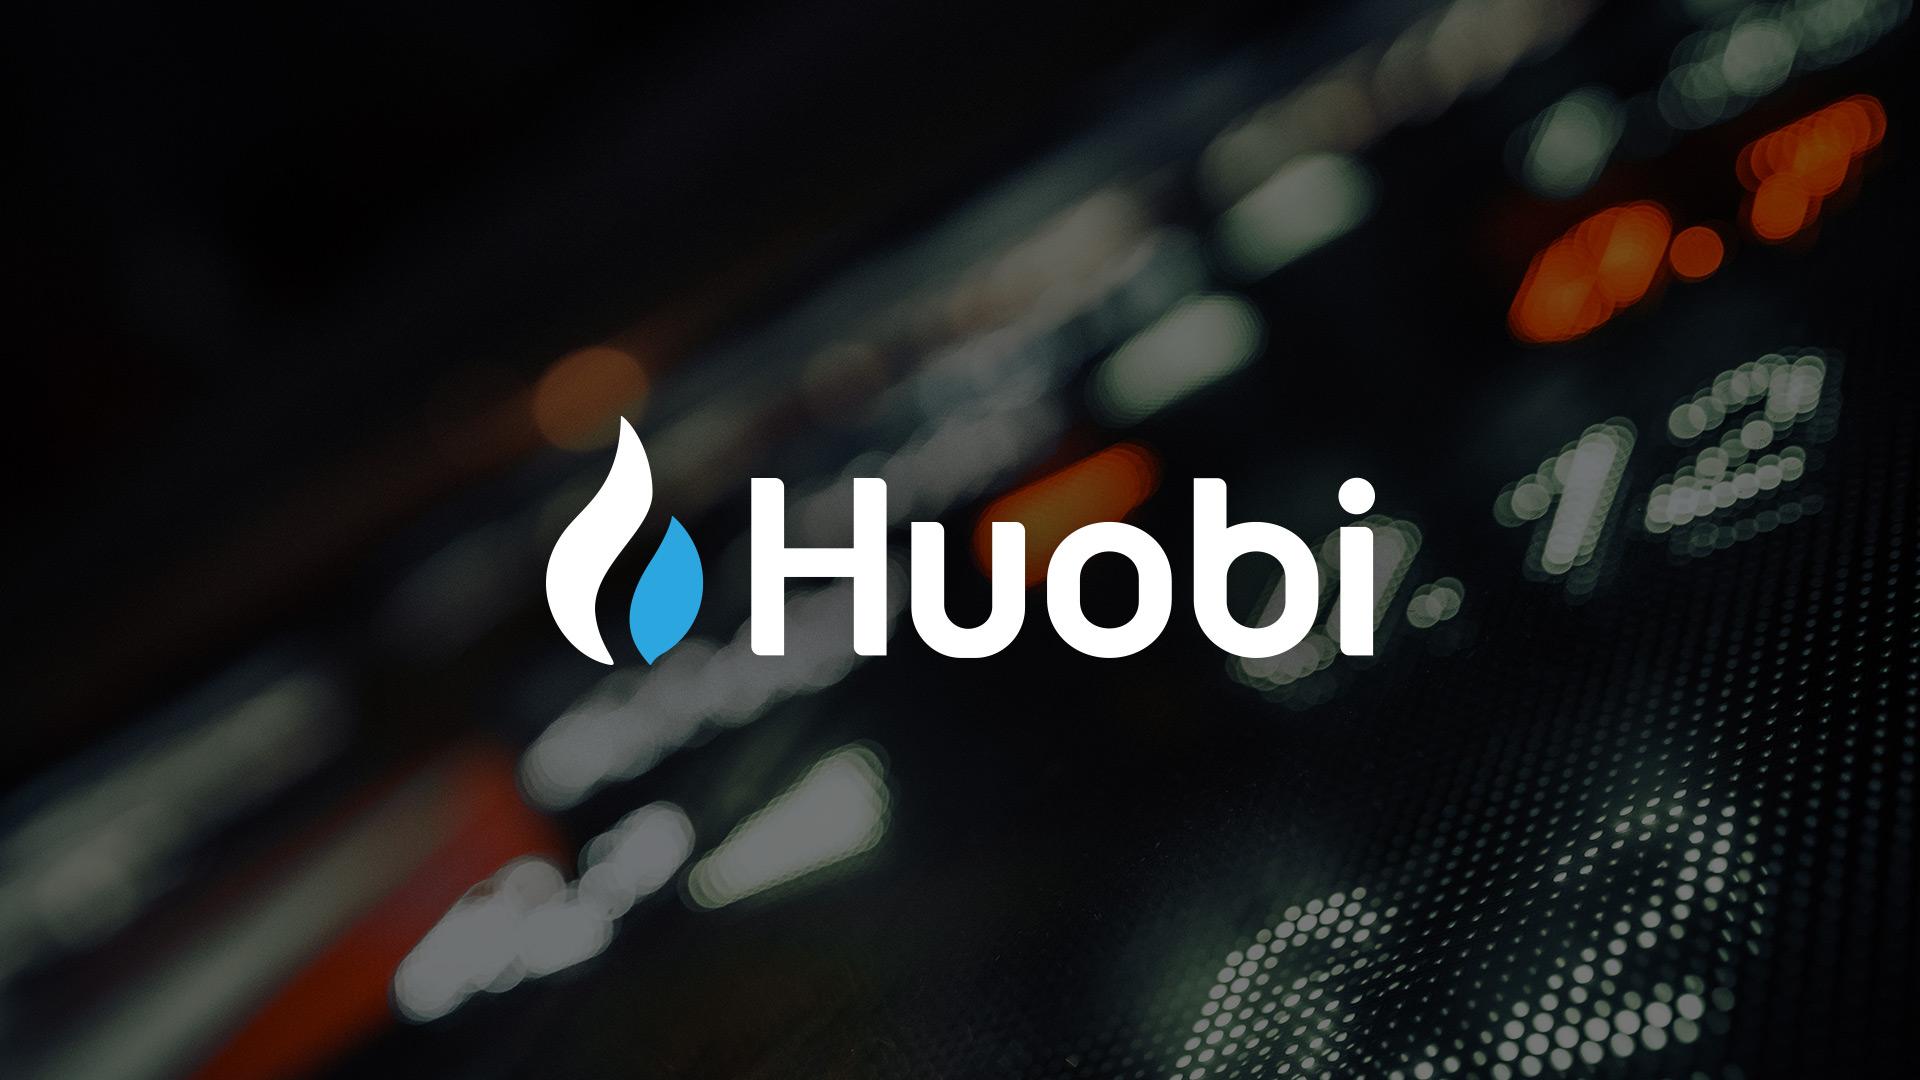 Former Homeland Security agent joins Huobi Trust as COO